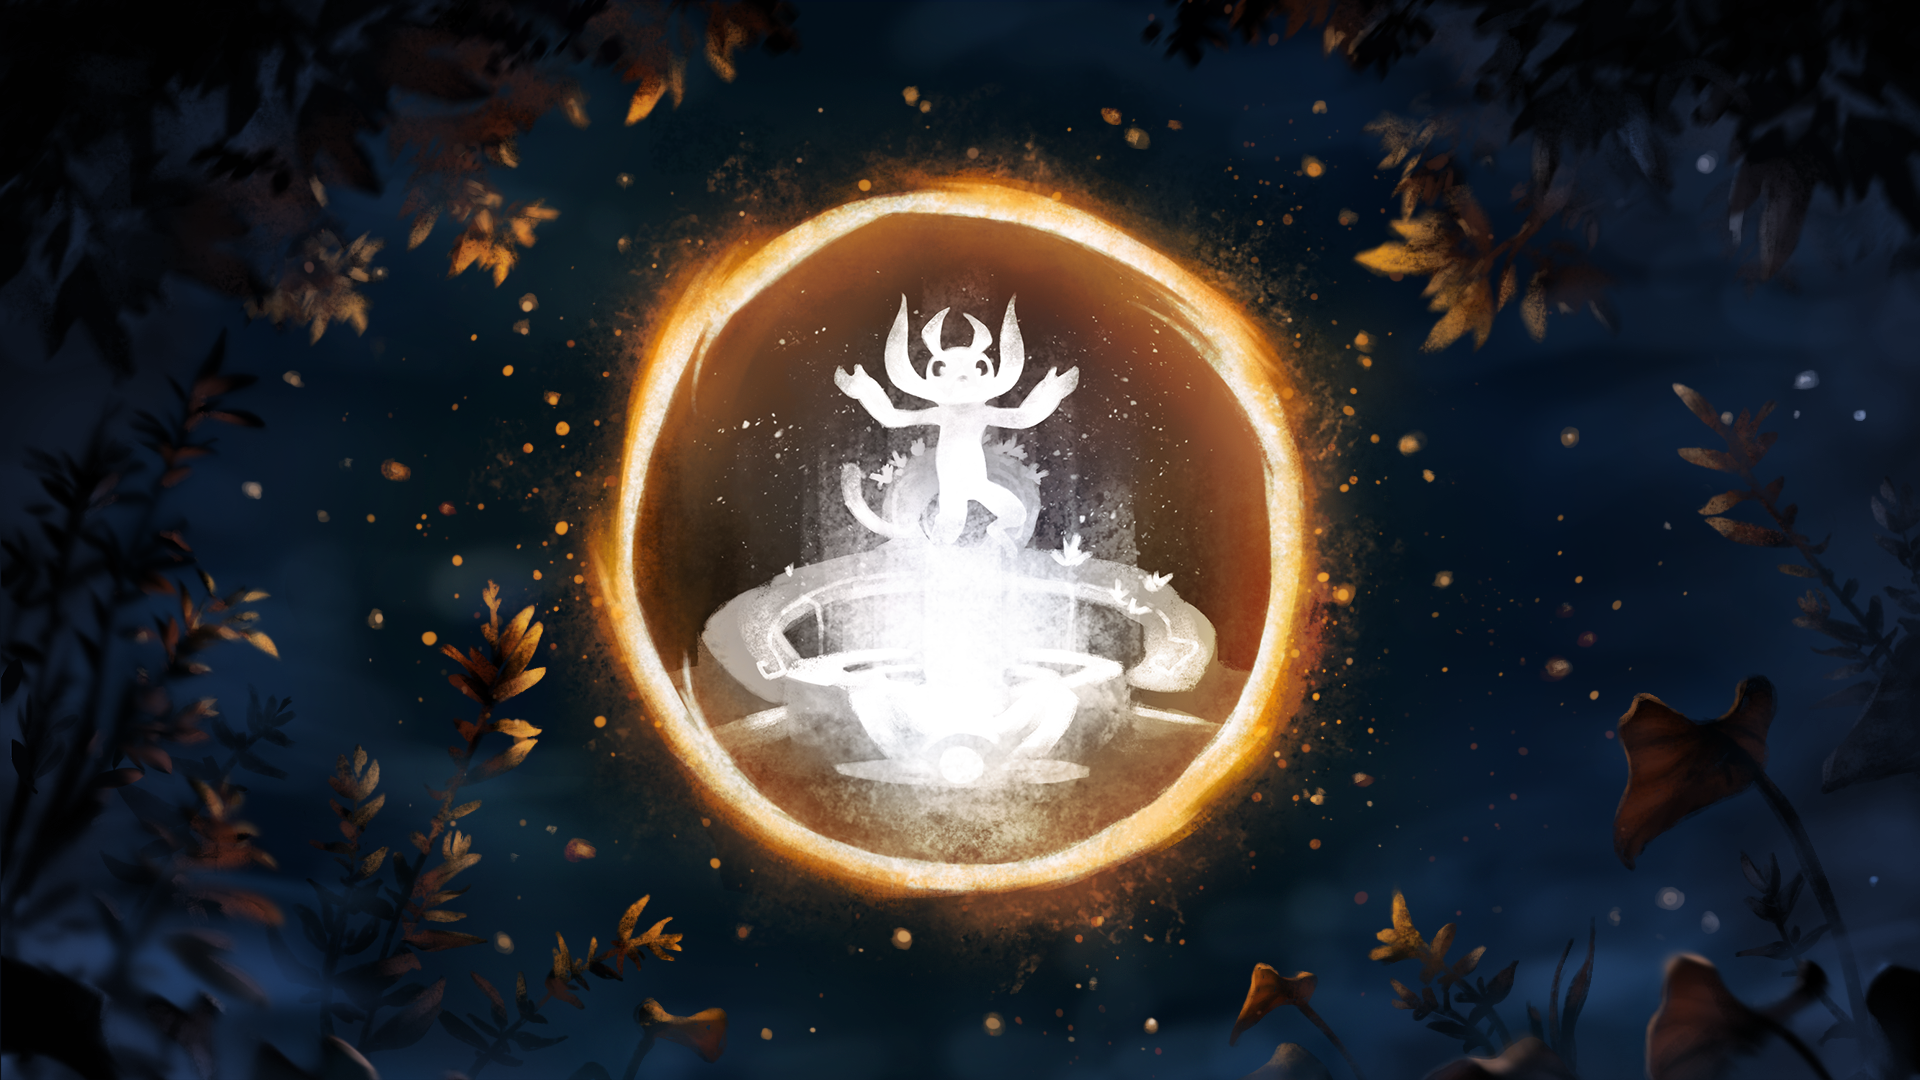 Safe and Sound achievement for Ori and the Blind Forest on Nintendo Switch